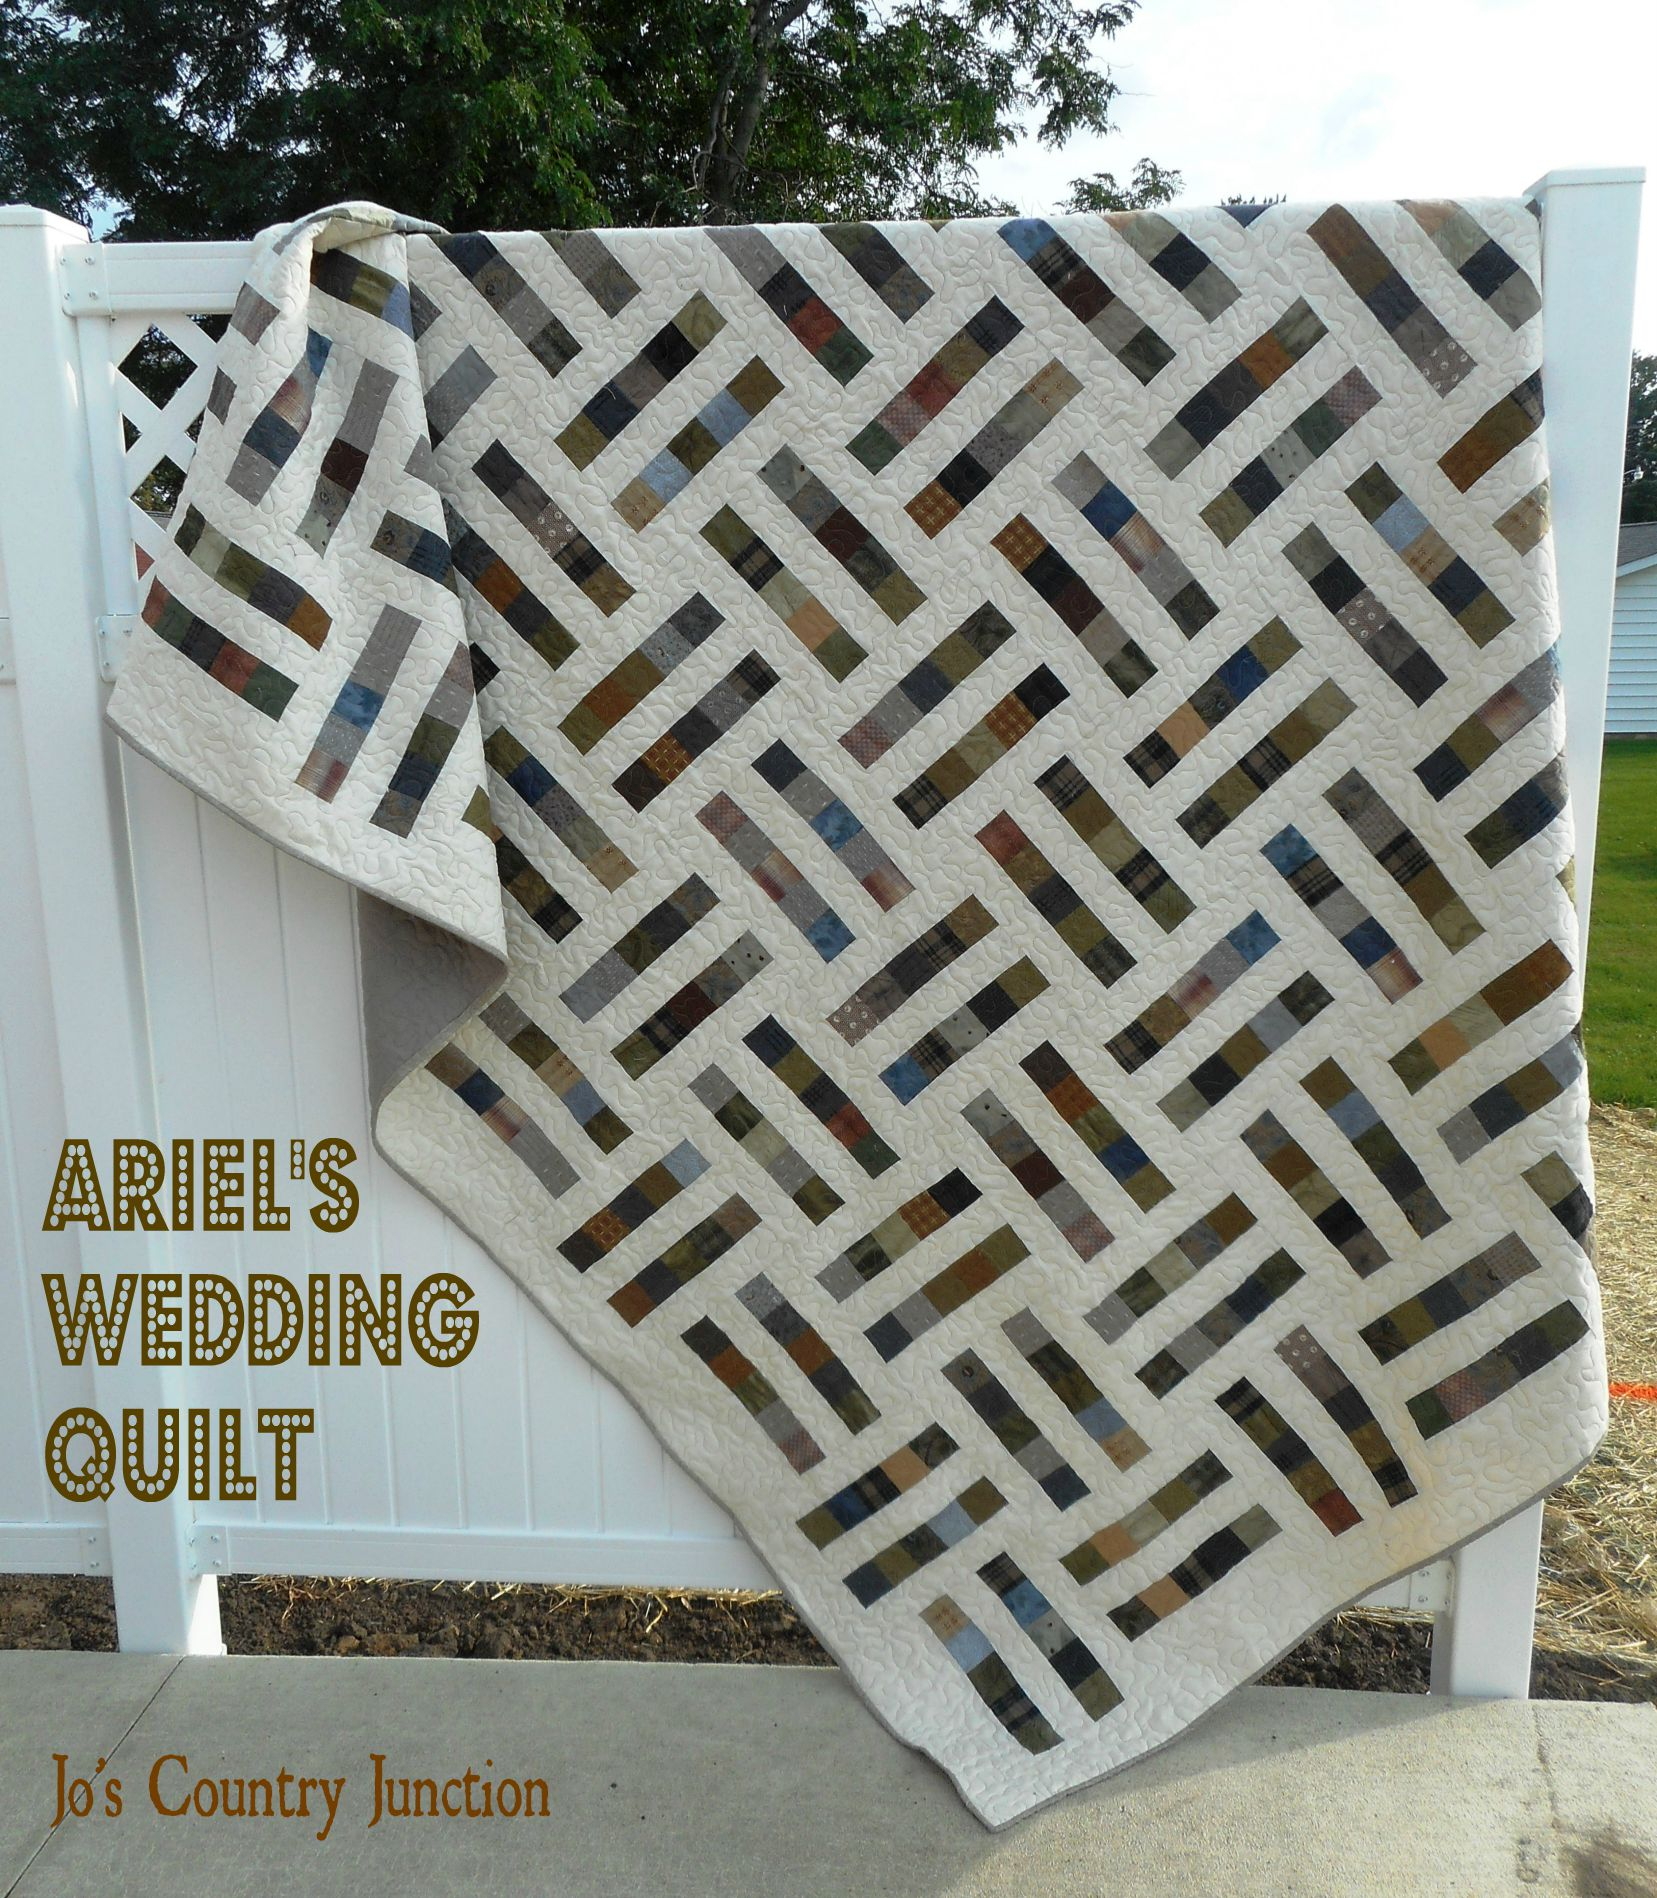 Ariel\'s Wedding Quilt: The Free Printable Pattern